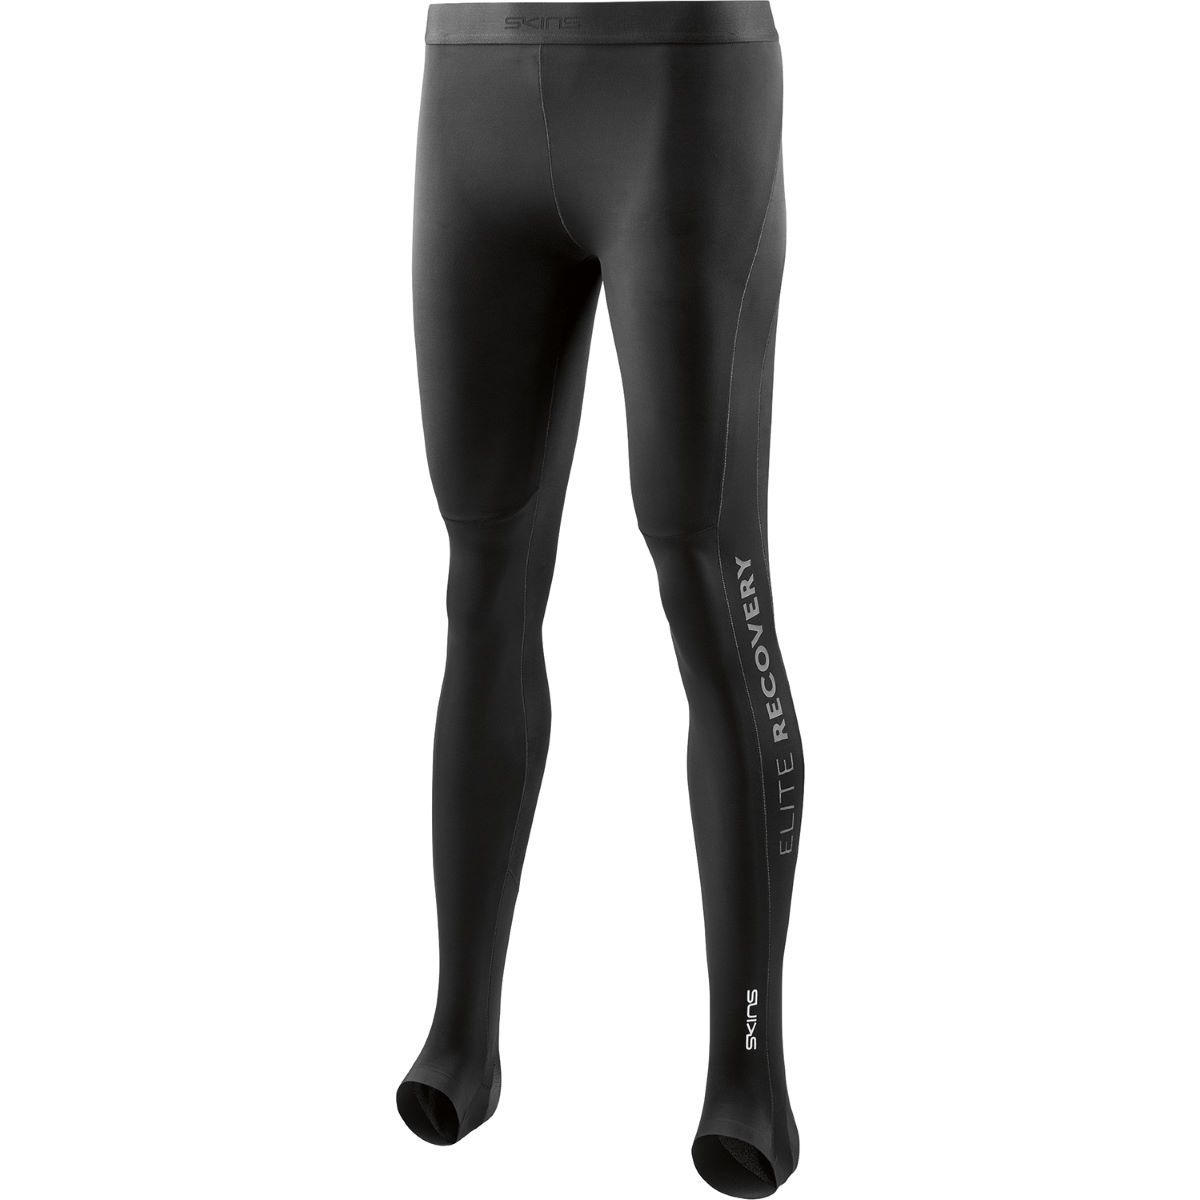 SKINS Women's DNAmic Recovery Elite Long Tights